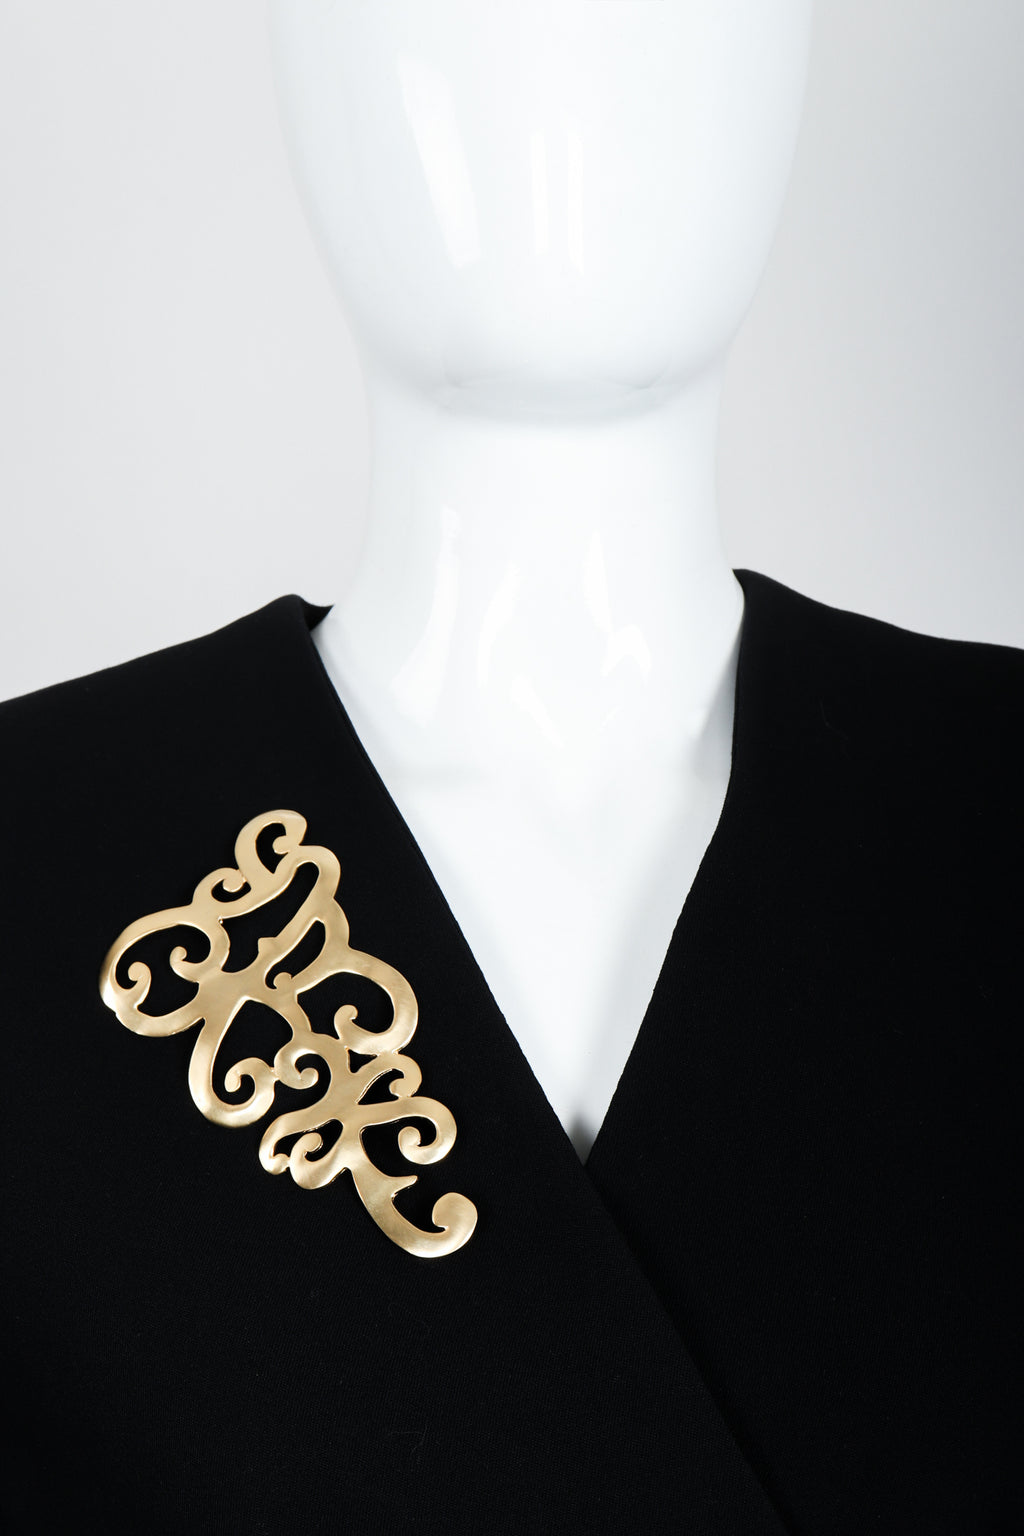 Vintage Ugo Correani Baroque Matte Swirl Brooch on mannequin at Recess Los Angeles